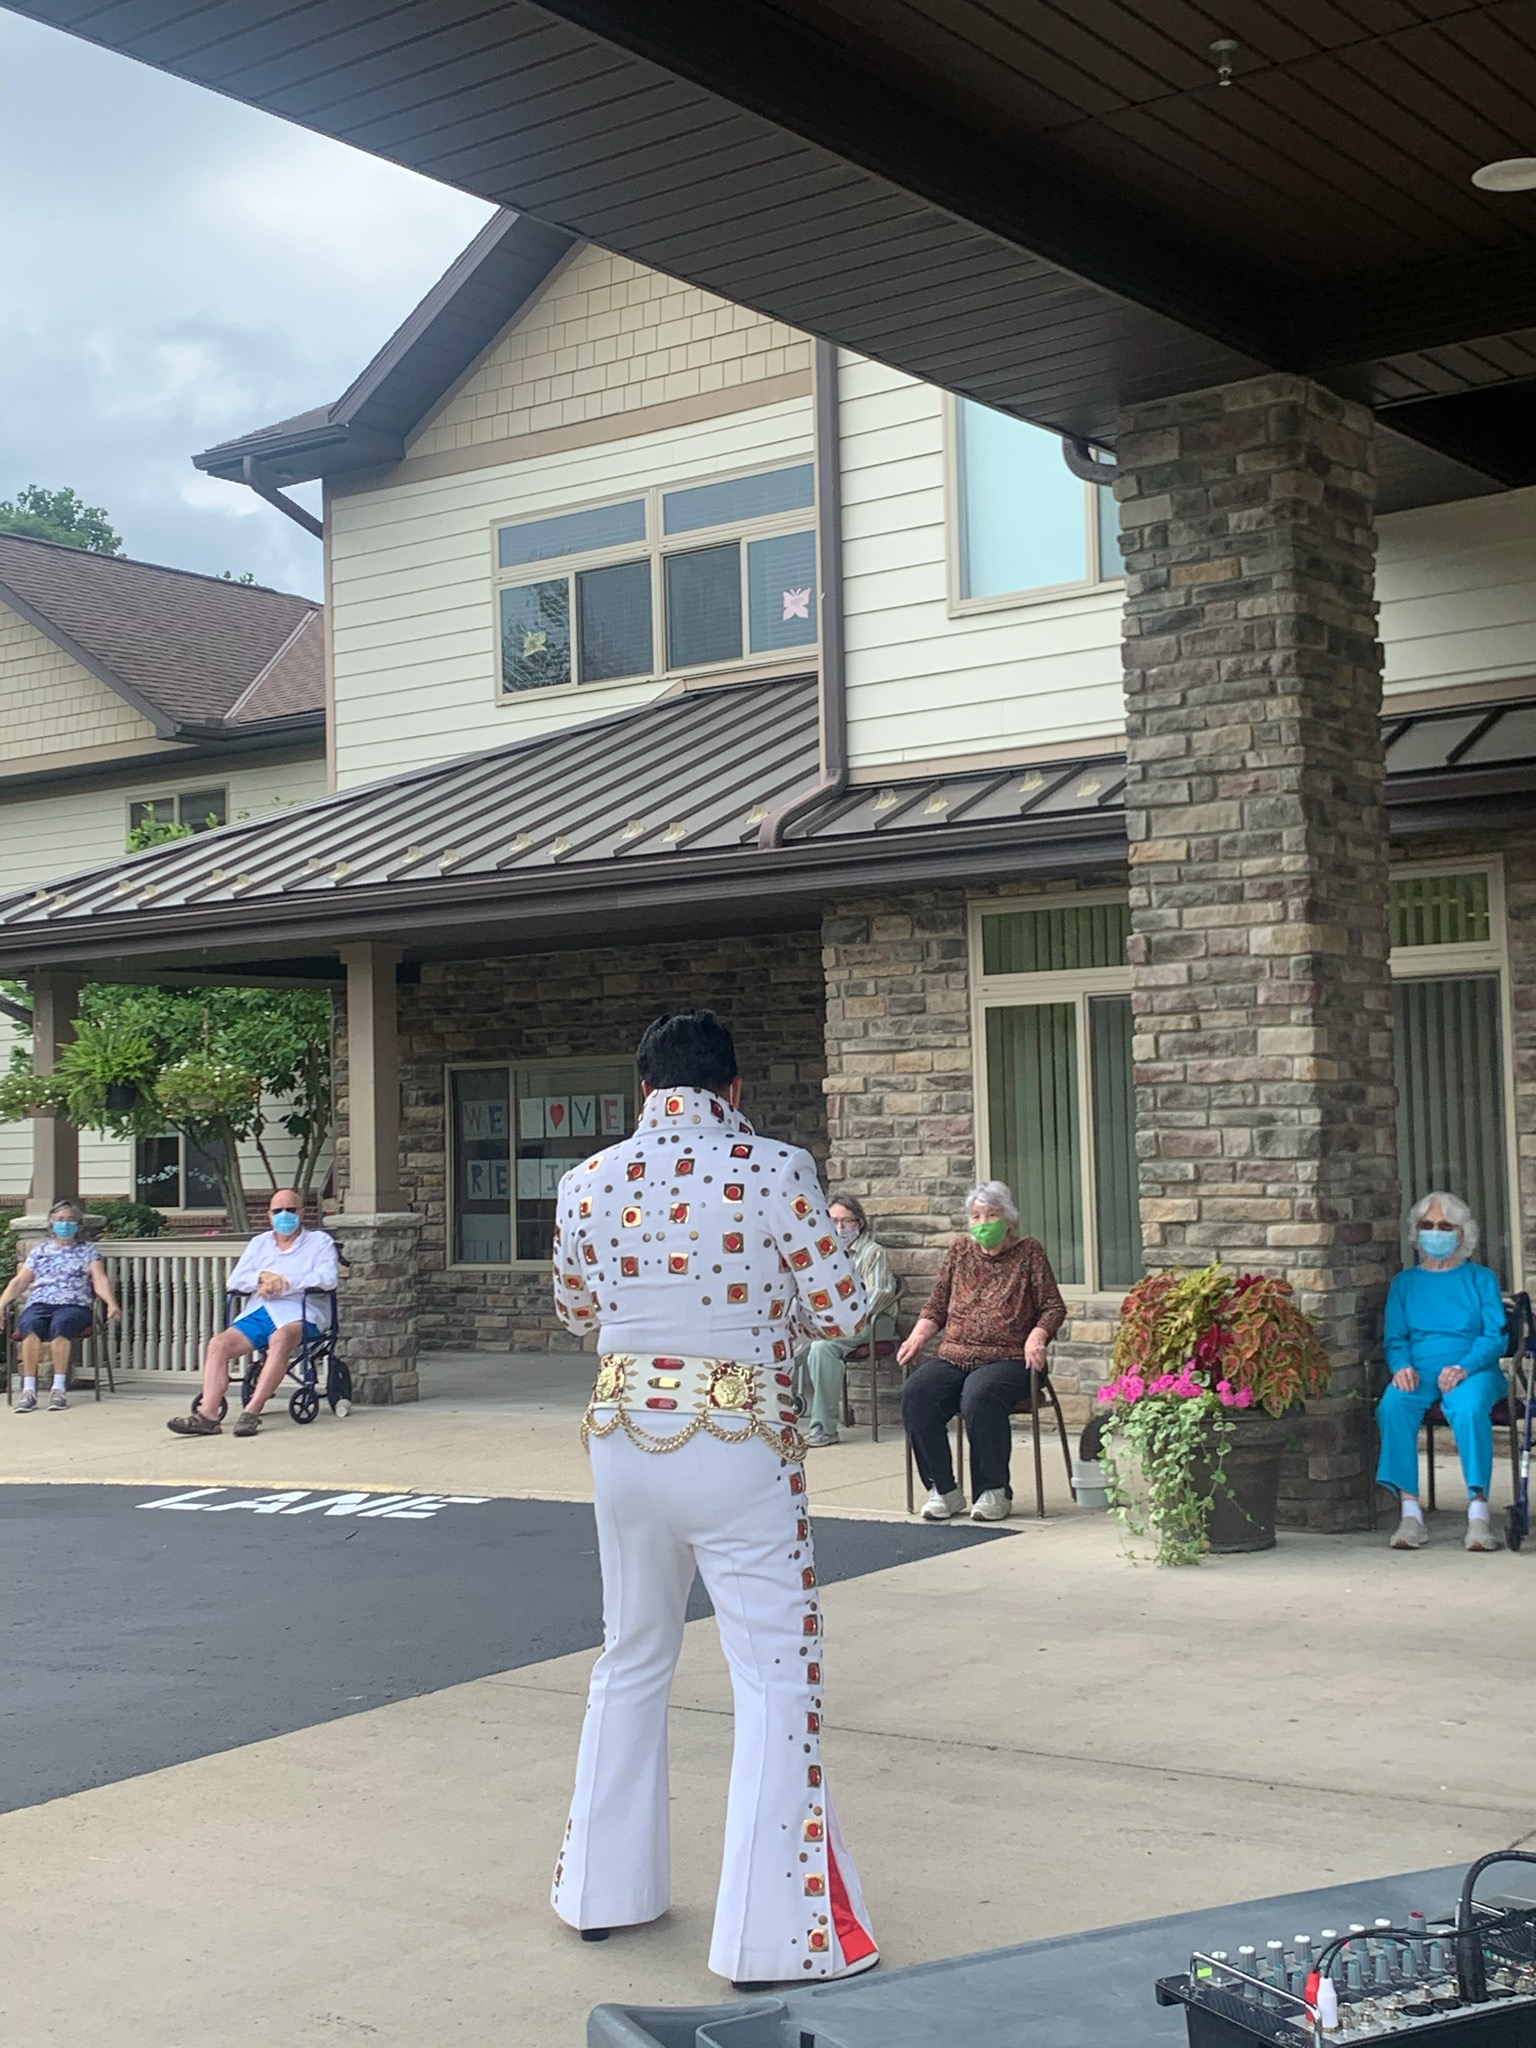 The residents are enjoying songs from the past.